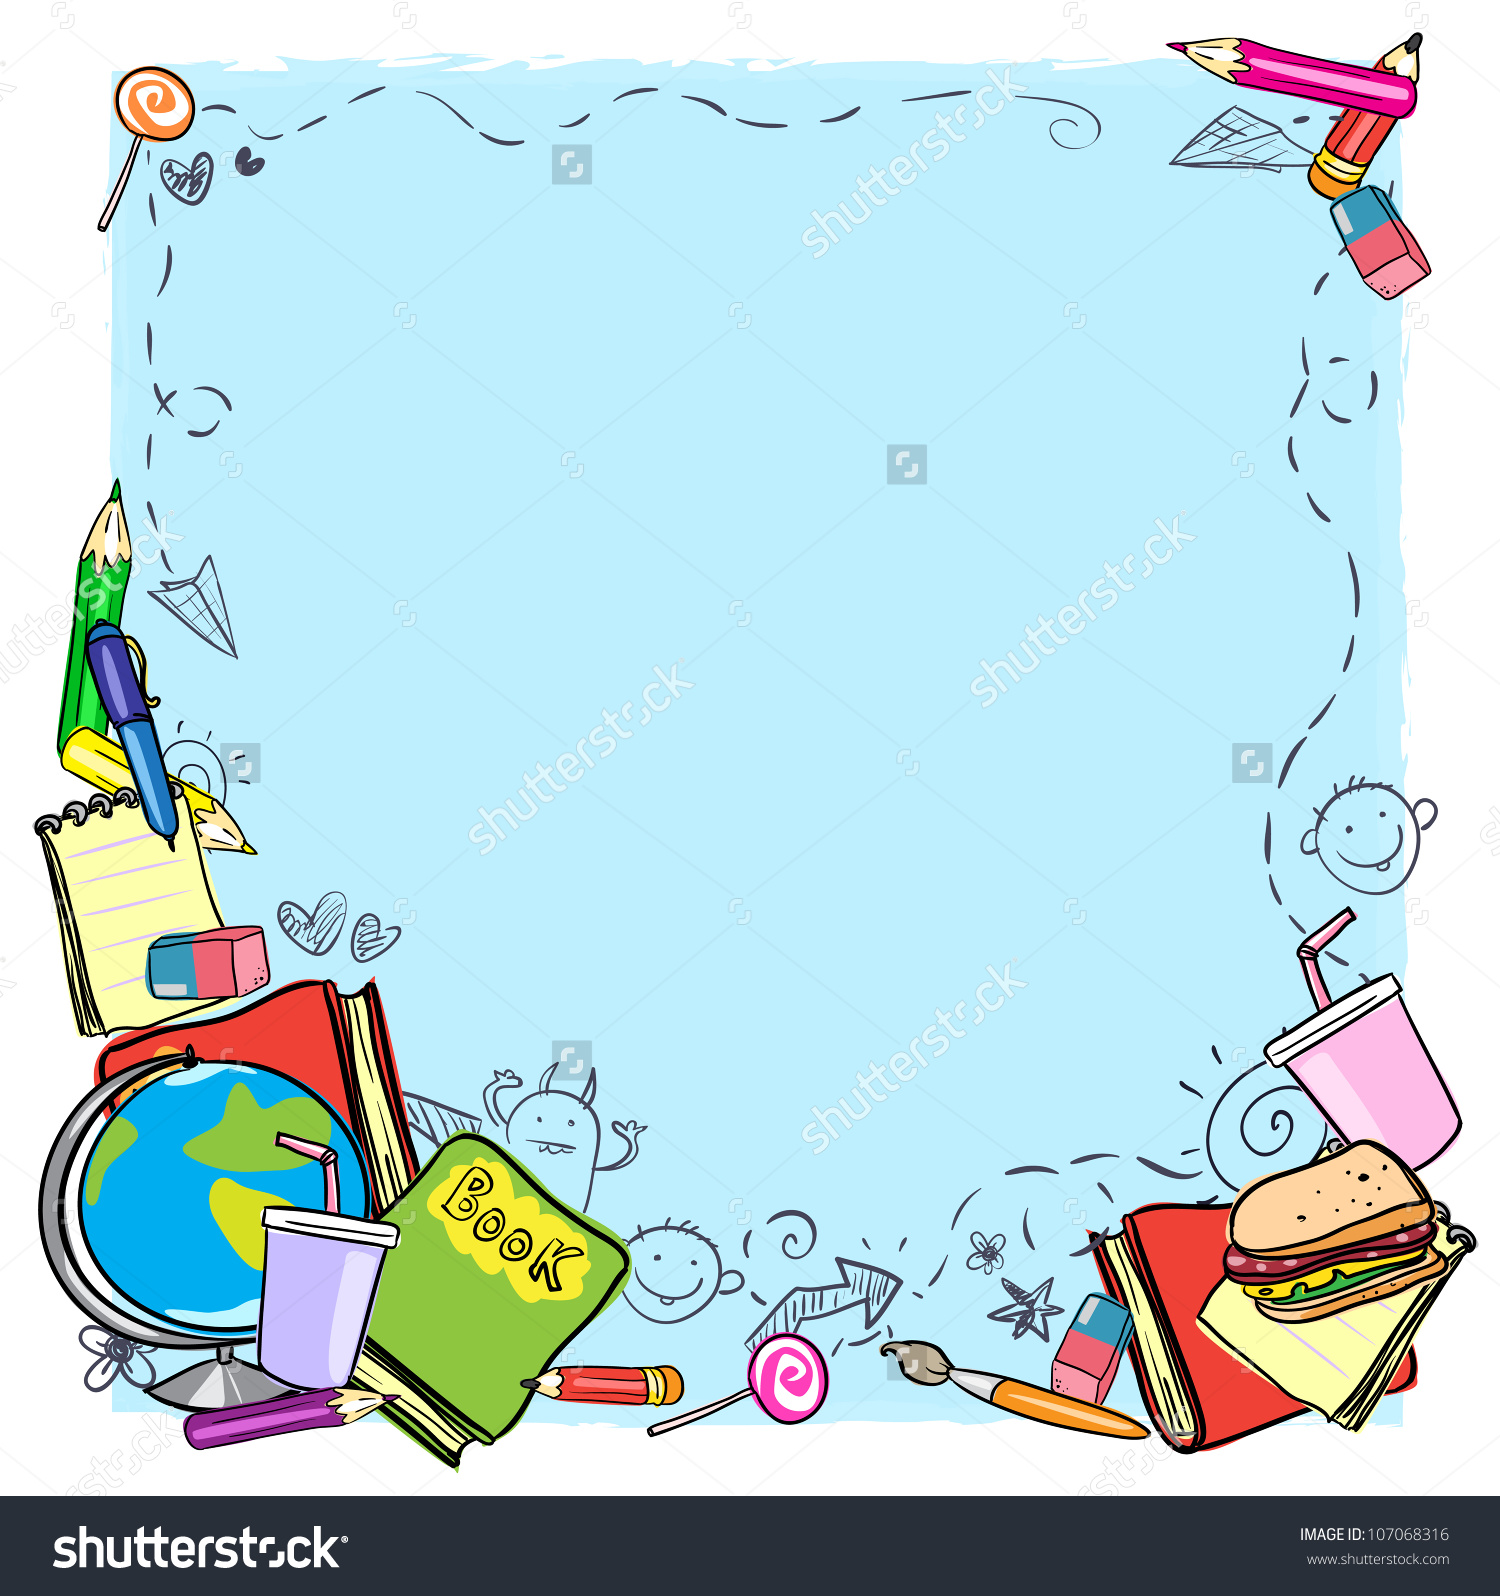 School Border Frame Space Text Back Stock Vector 107068316.